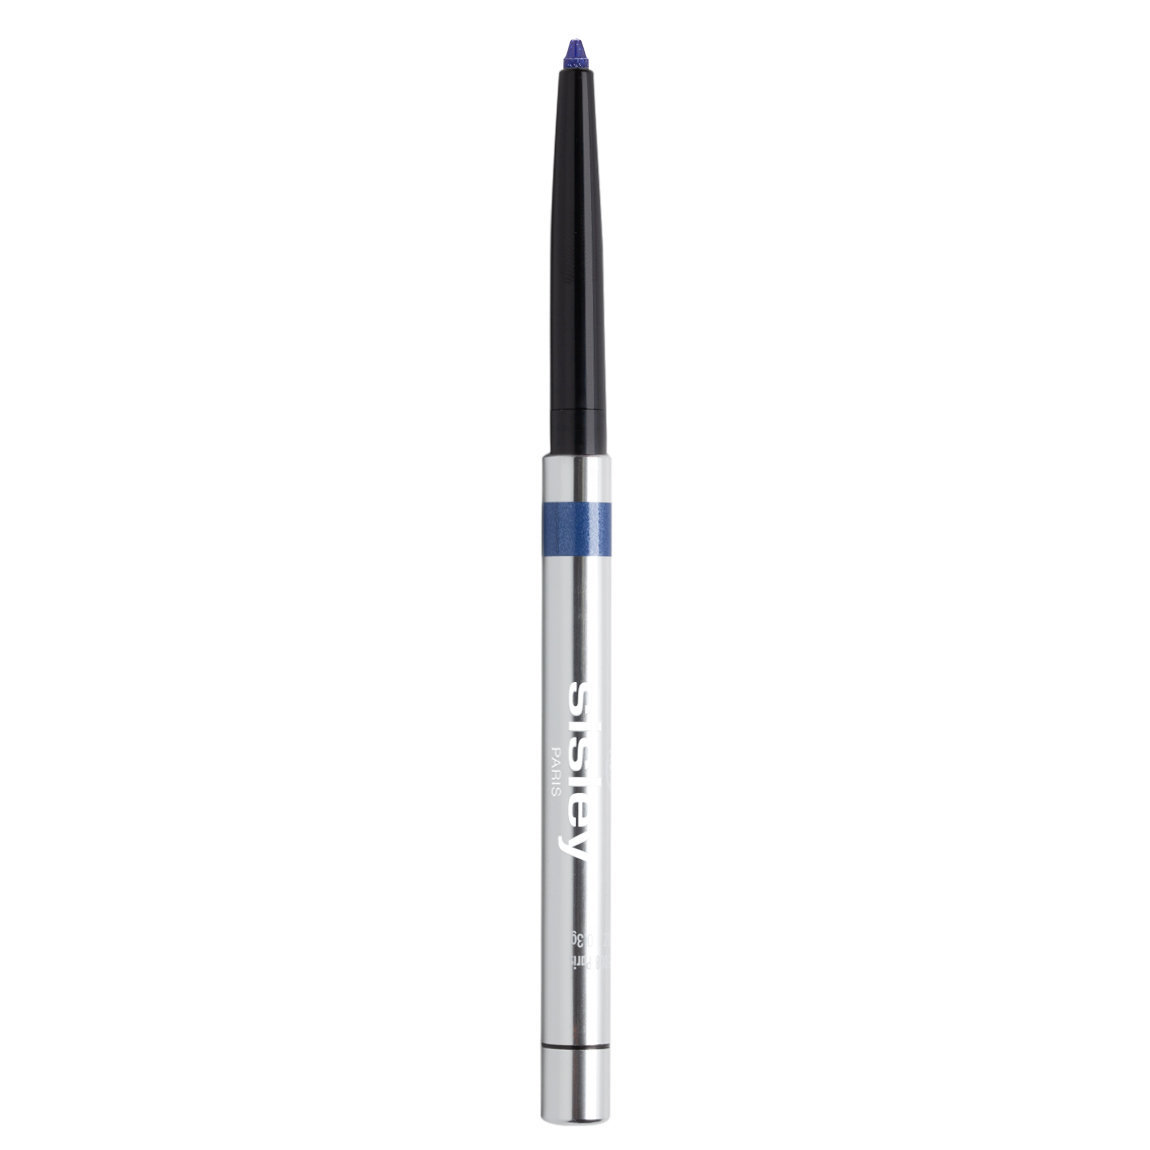 Sisley-Paris Phyto-Khol Star Waterproof 5 Sparking Blue alternative view 1.